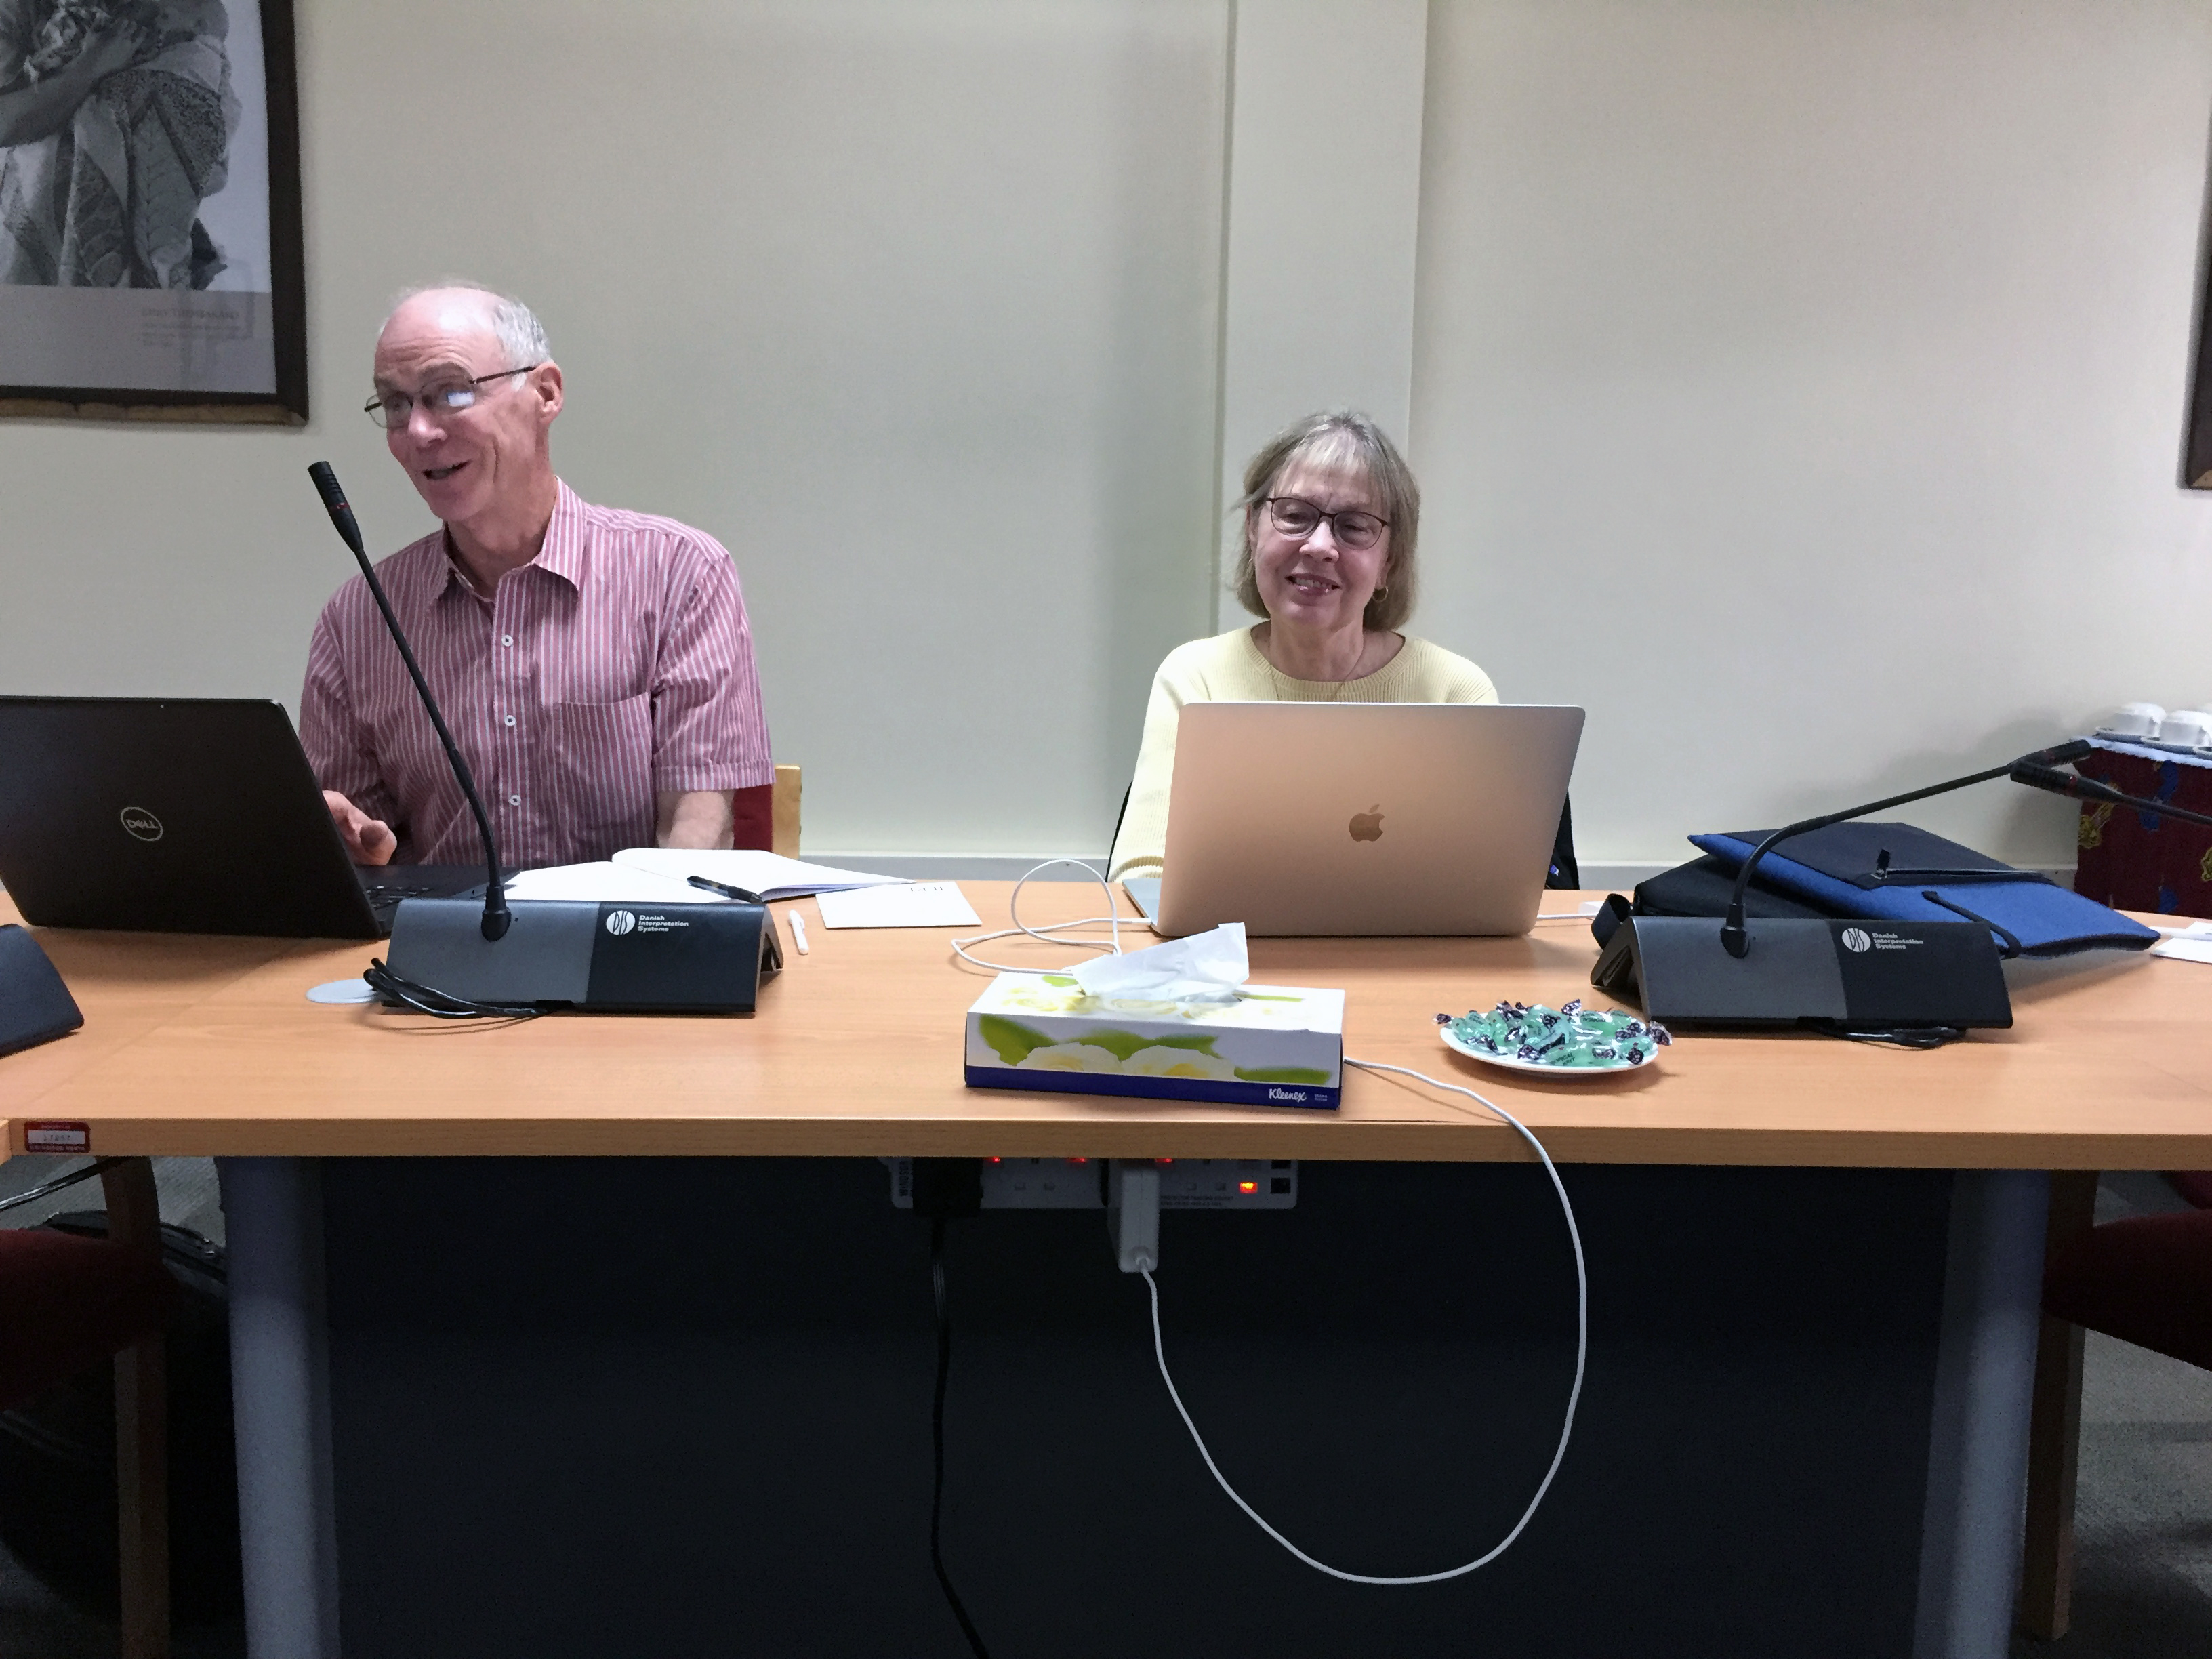 Dr. George Kennedy and Dr. Linda Hanley-Bowdoin leading the project meeting as Co-Principal investigators.